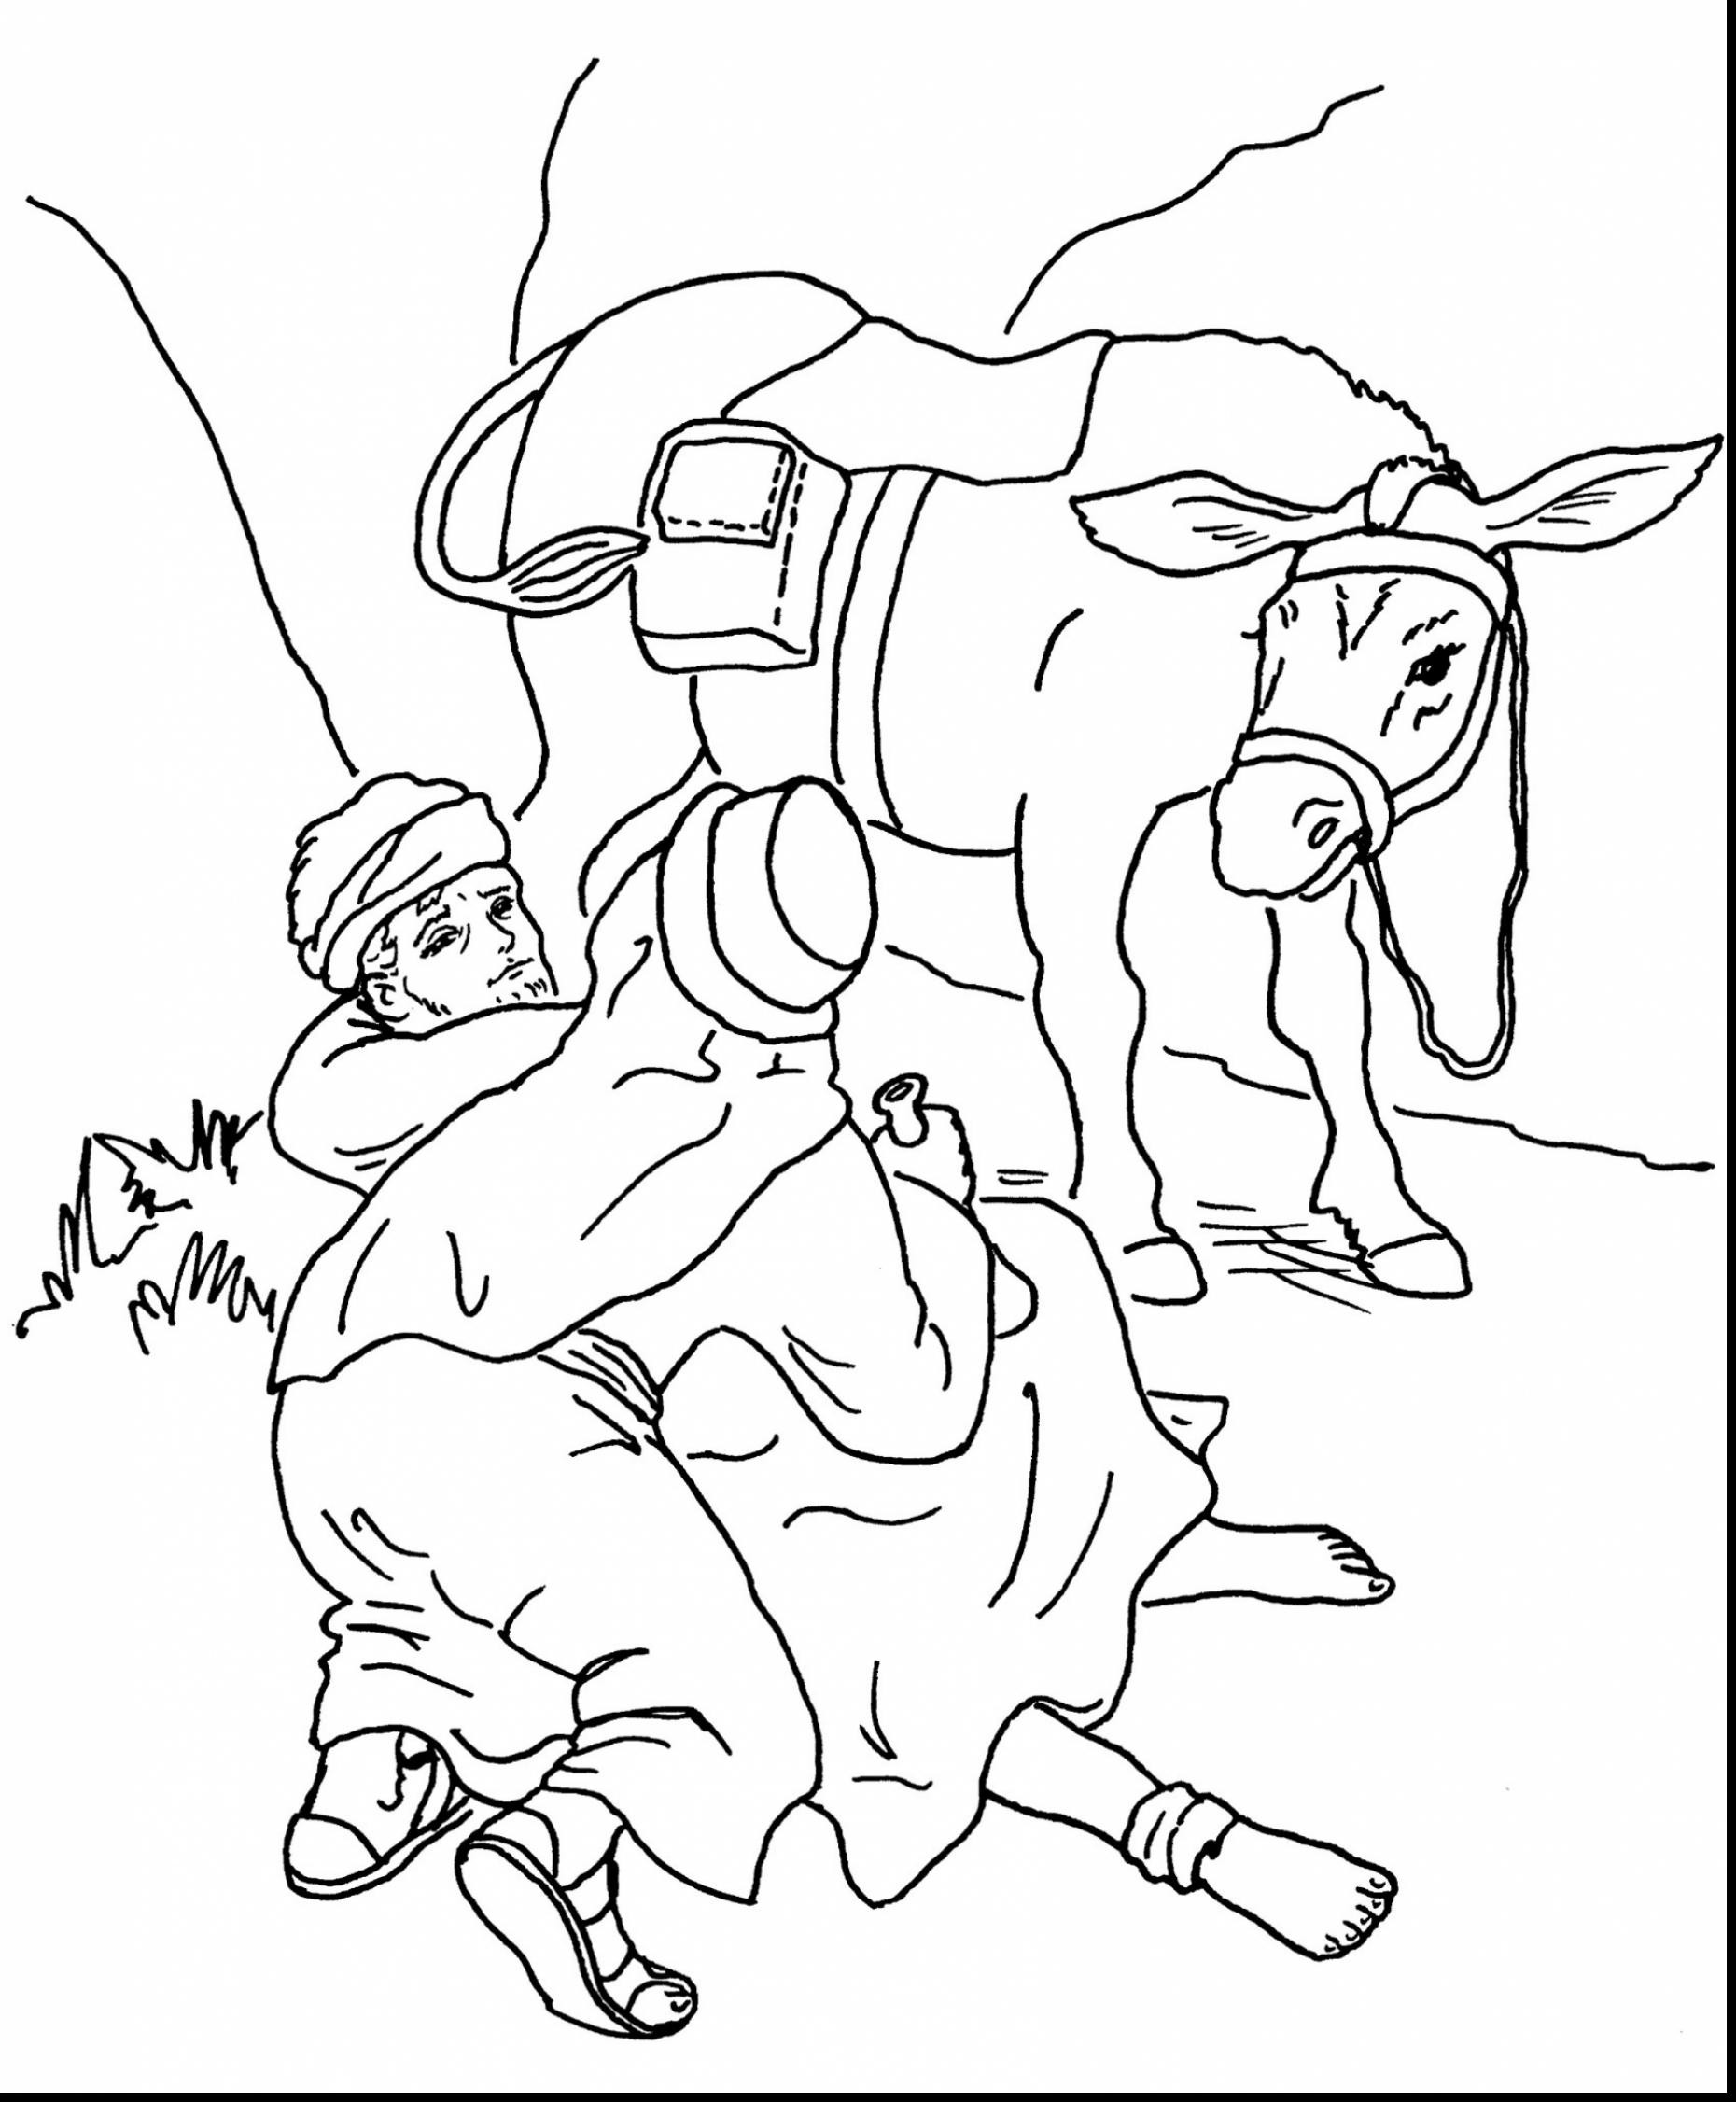 Res: 1860x2252, Launching The Good Samaritan Coloring Page With Wallpapers Background